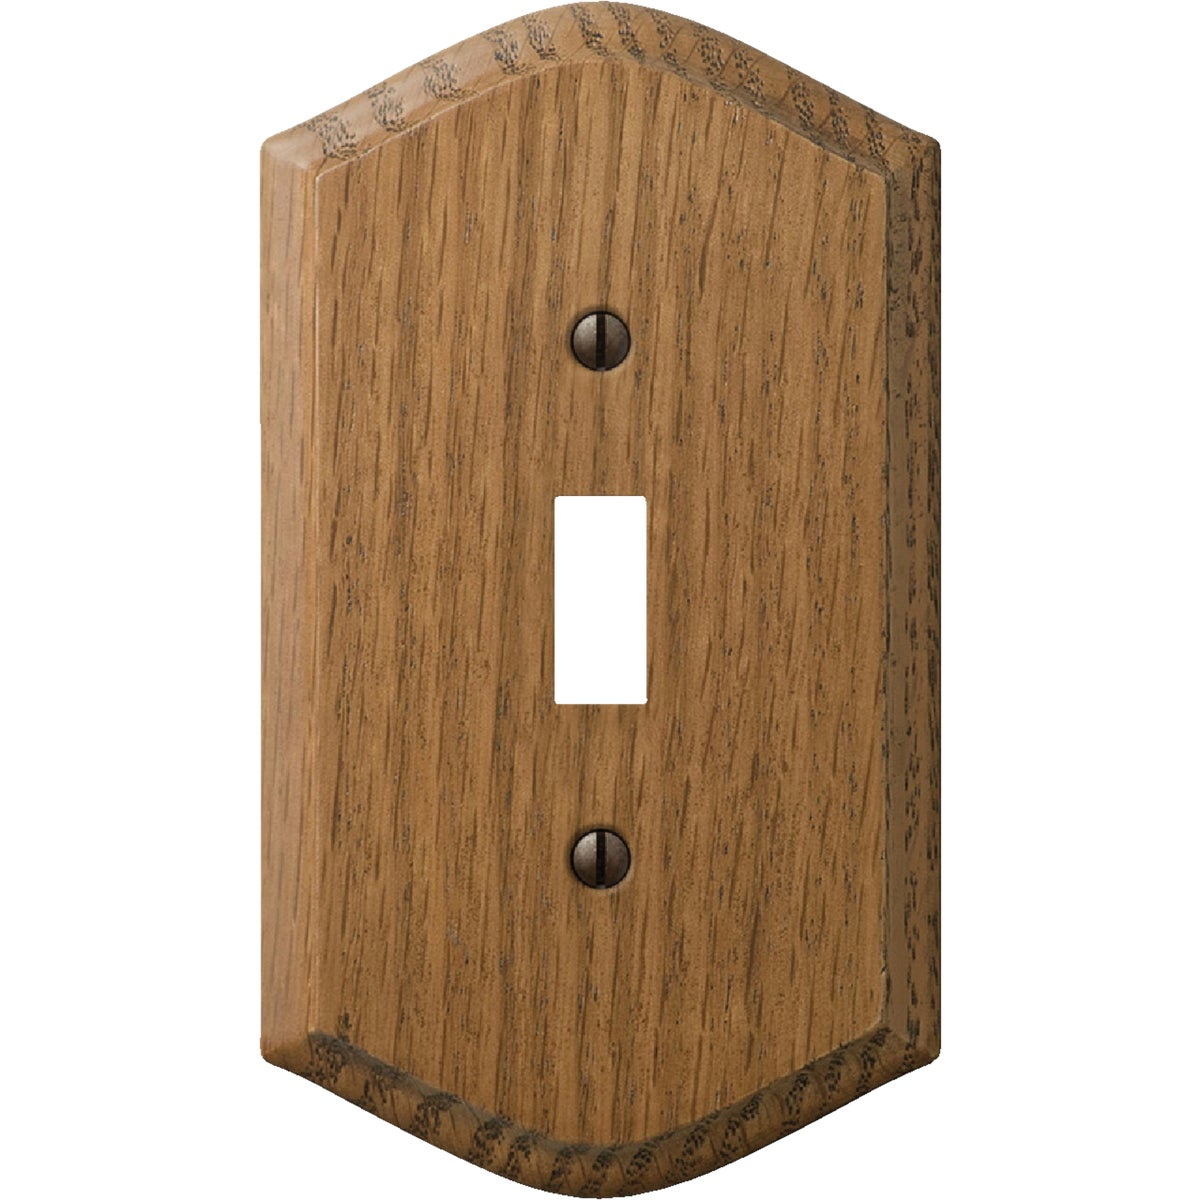 OAK 1-TOG WALL PLATE - 701 by Jackson Deerfield Mf